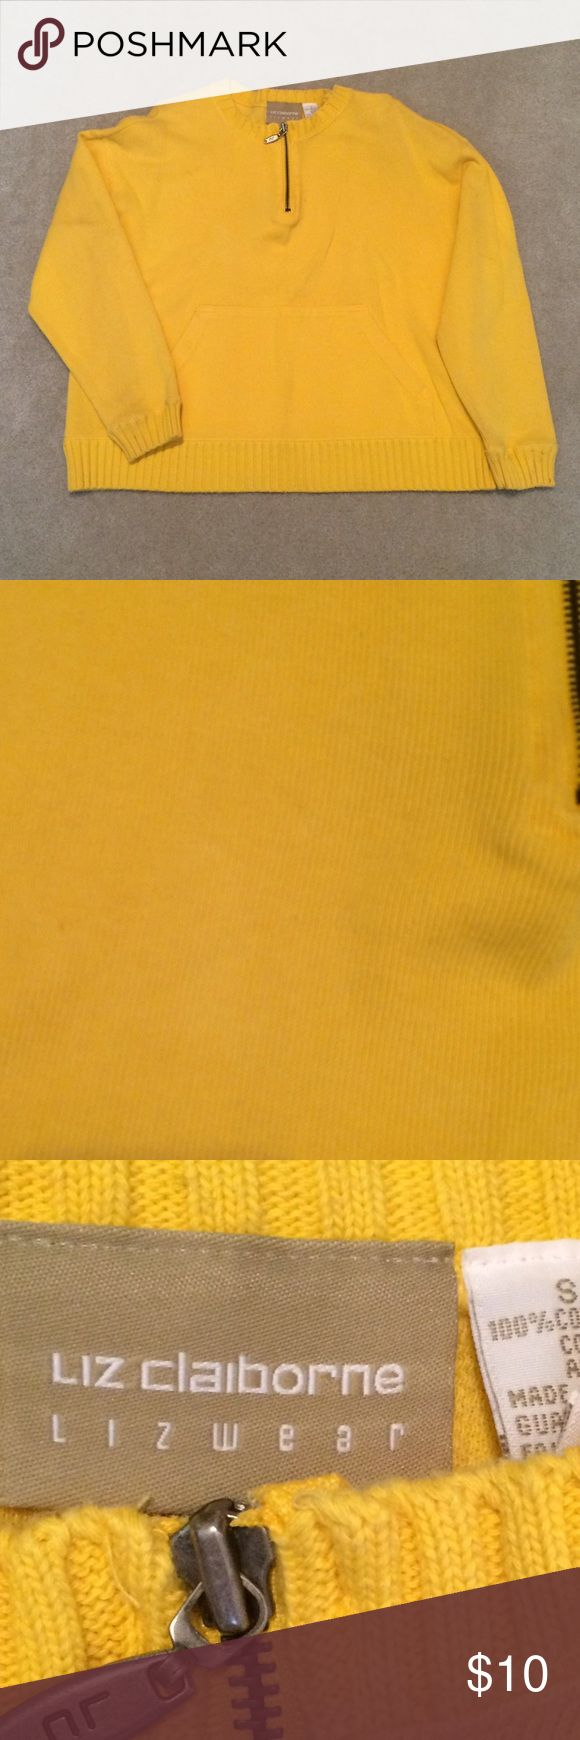 🚺 Liz Claiborne Yellow Pullover Zip Sweater Liz Claiborne Bright Yellow Pullover Zip Sweater Liz Claiborne Sweaters